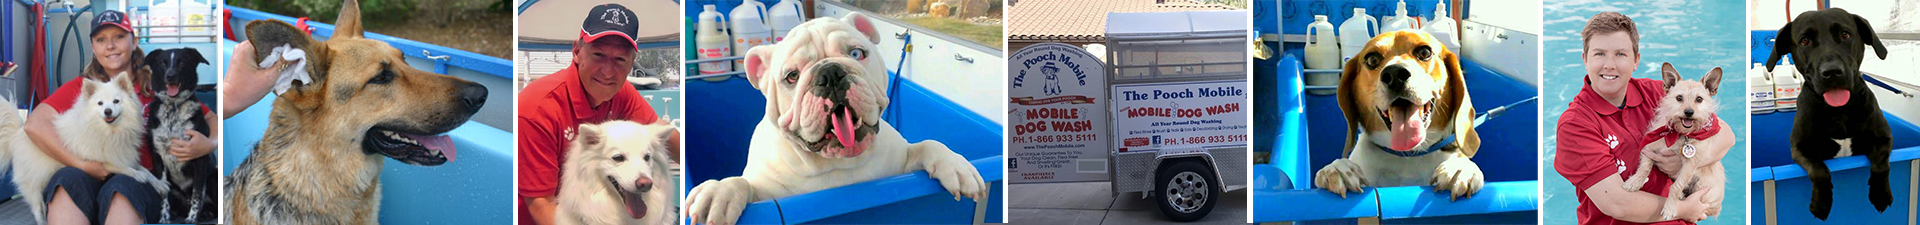 Dog grooming mobile dog washing pet grooming with the pooch mobile your pooch will enjoy our all inclusive dog wash services year round solutioingenieria Choice Image